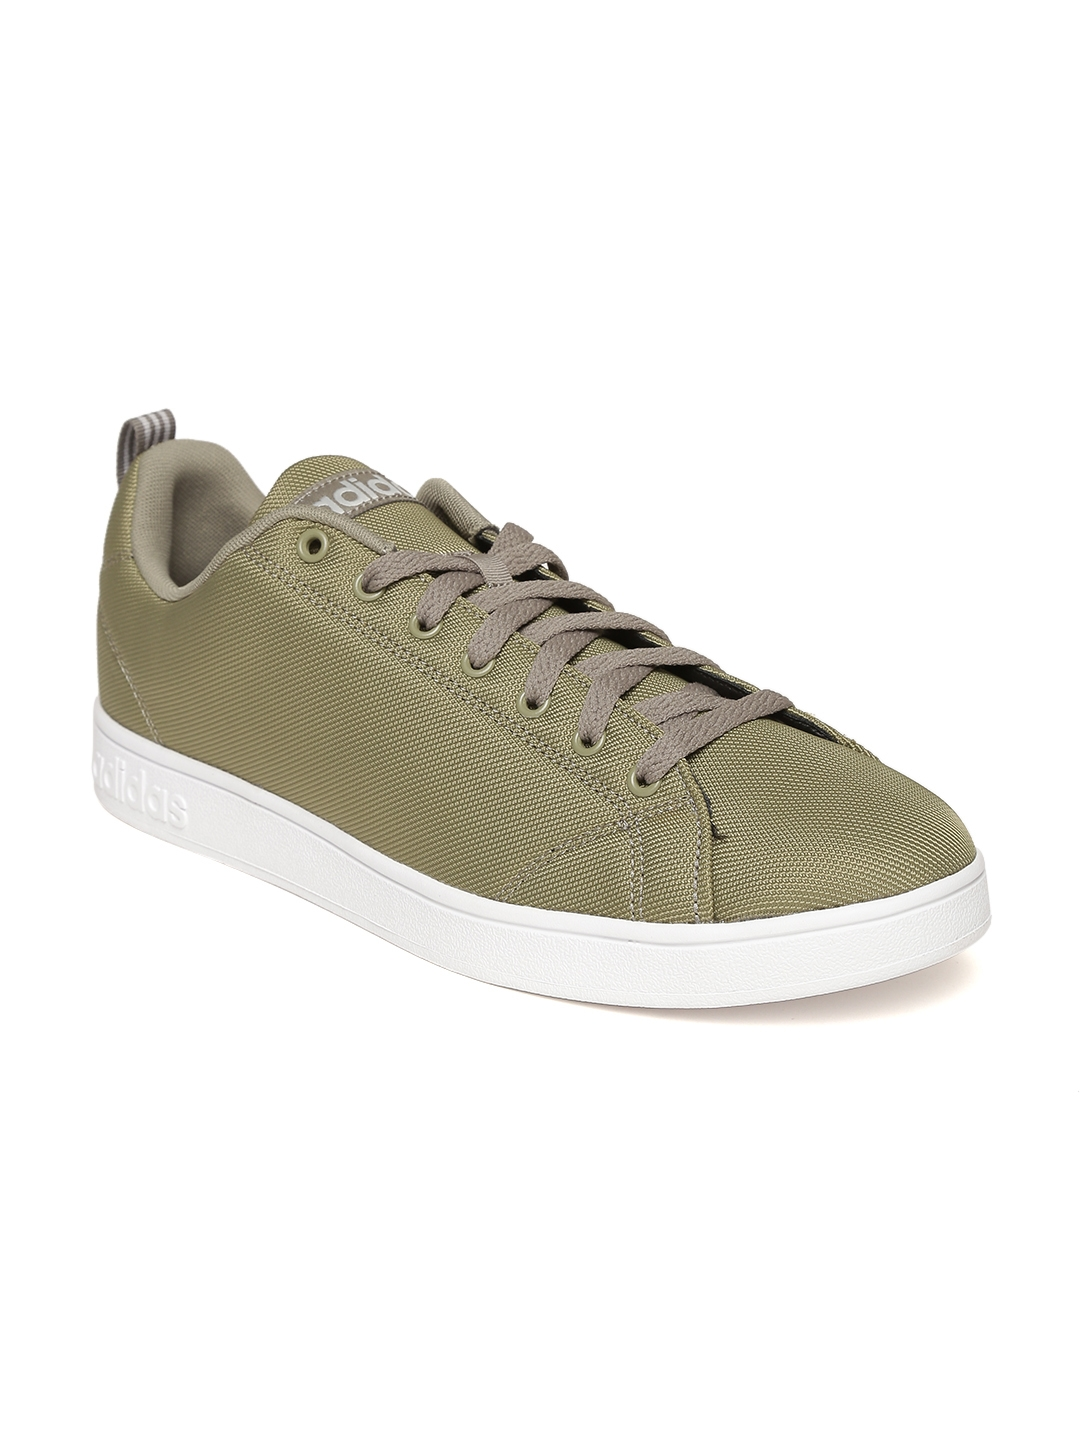 Adidas NEO Men Olive Green VS Advantage CL Sneakers